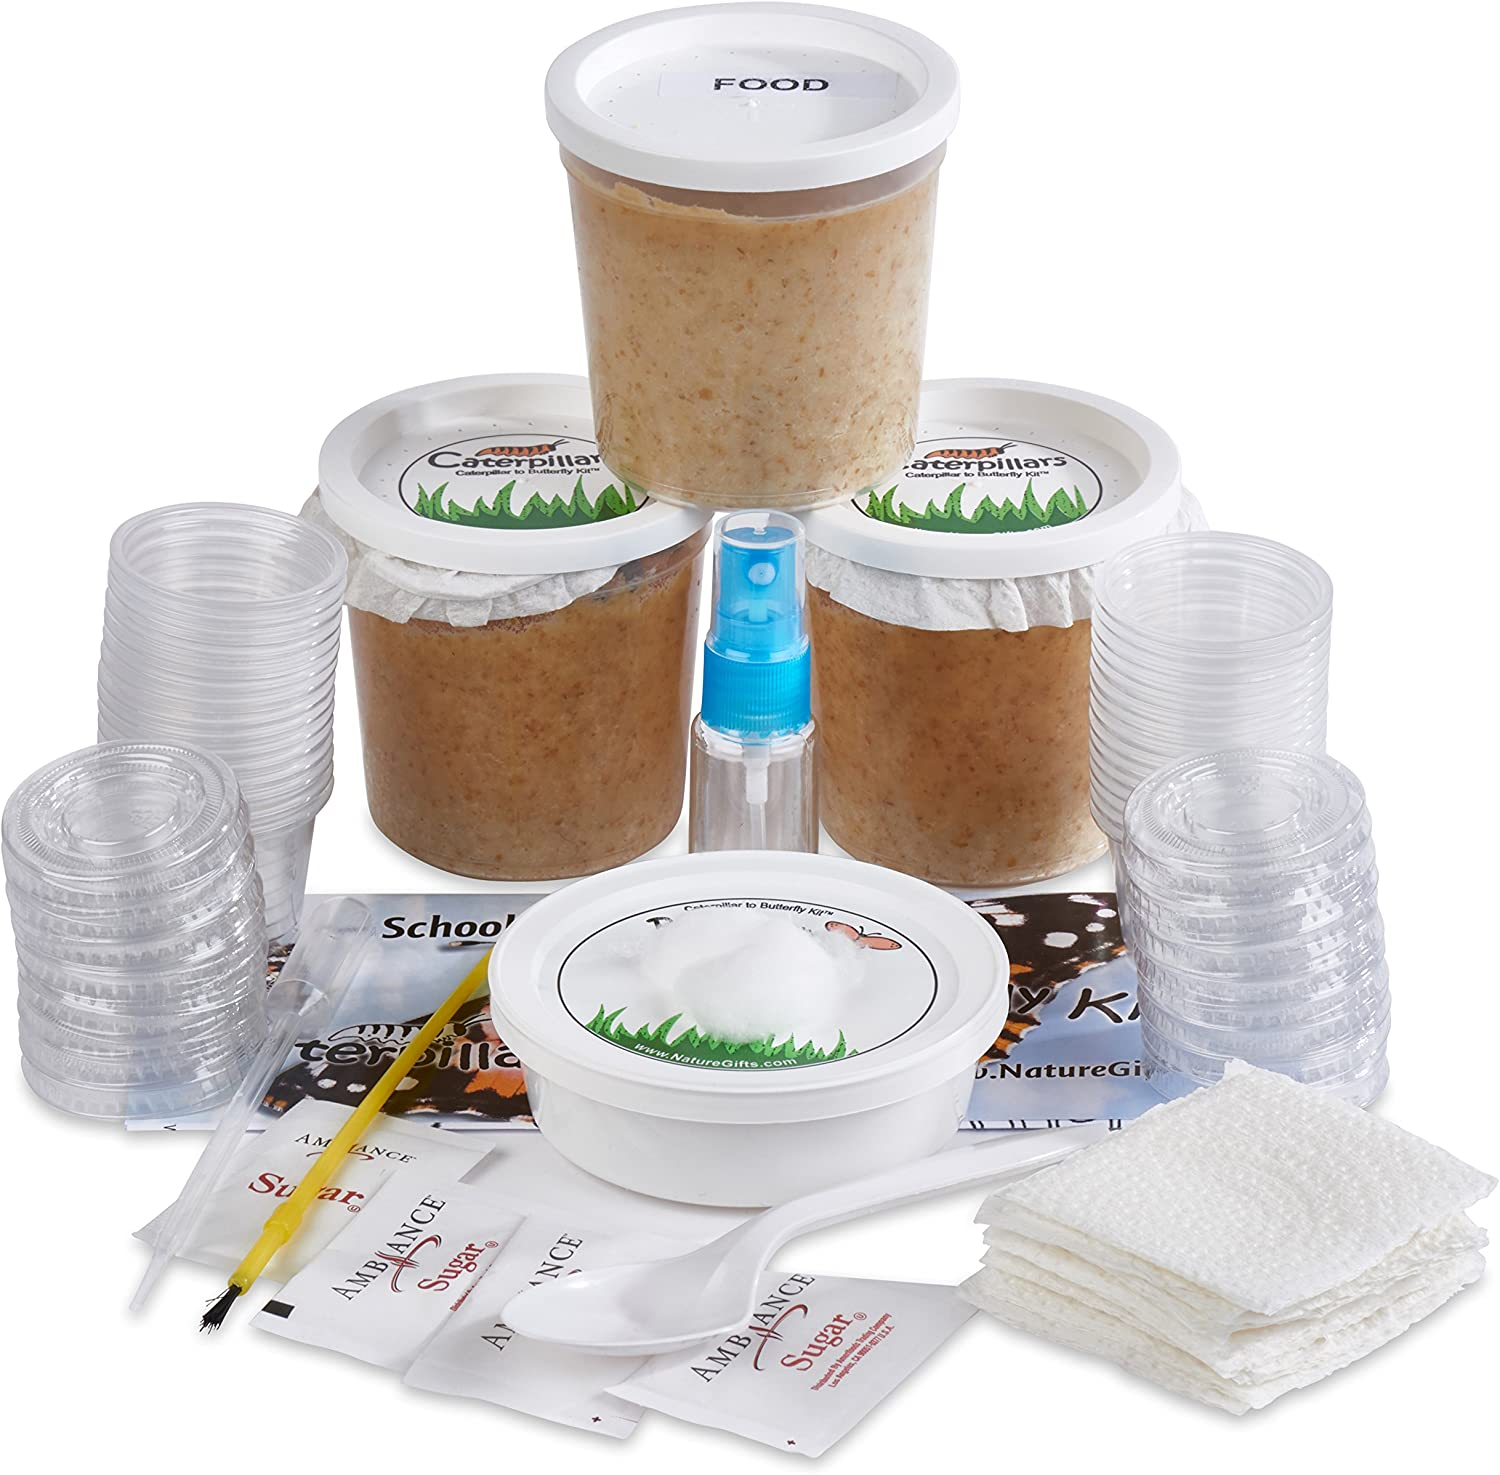 Nature Gift Store 30 Live Caterpillars Shipped Now: Butterfly Kit Refill for School Sized Kit with Extra Larva Rearing Supplies